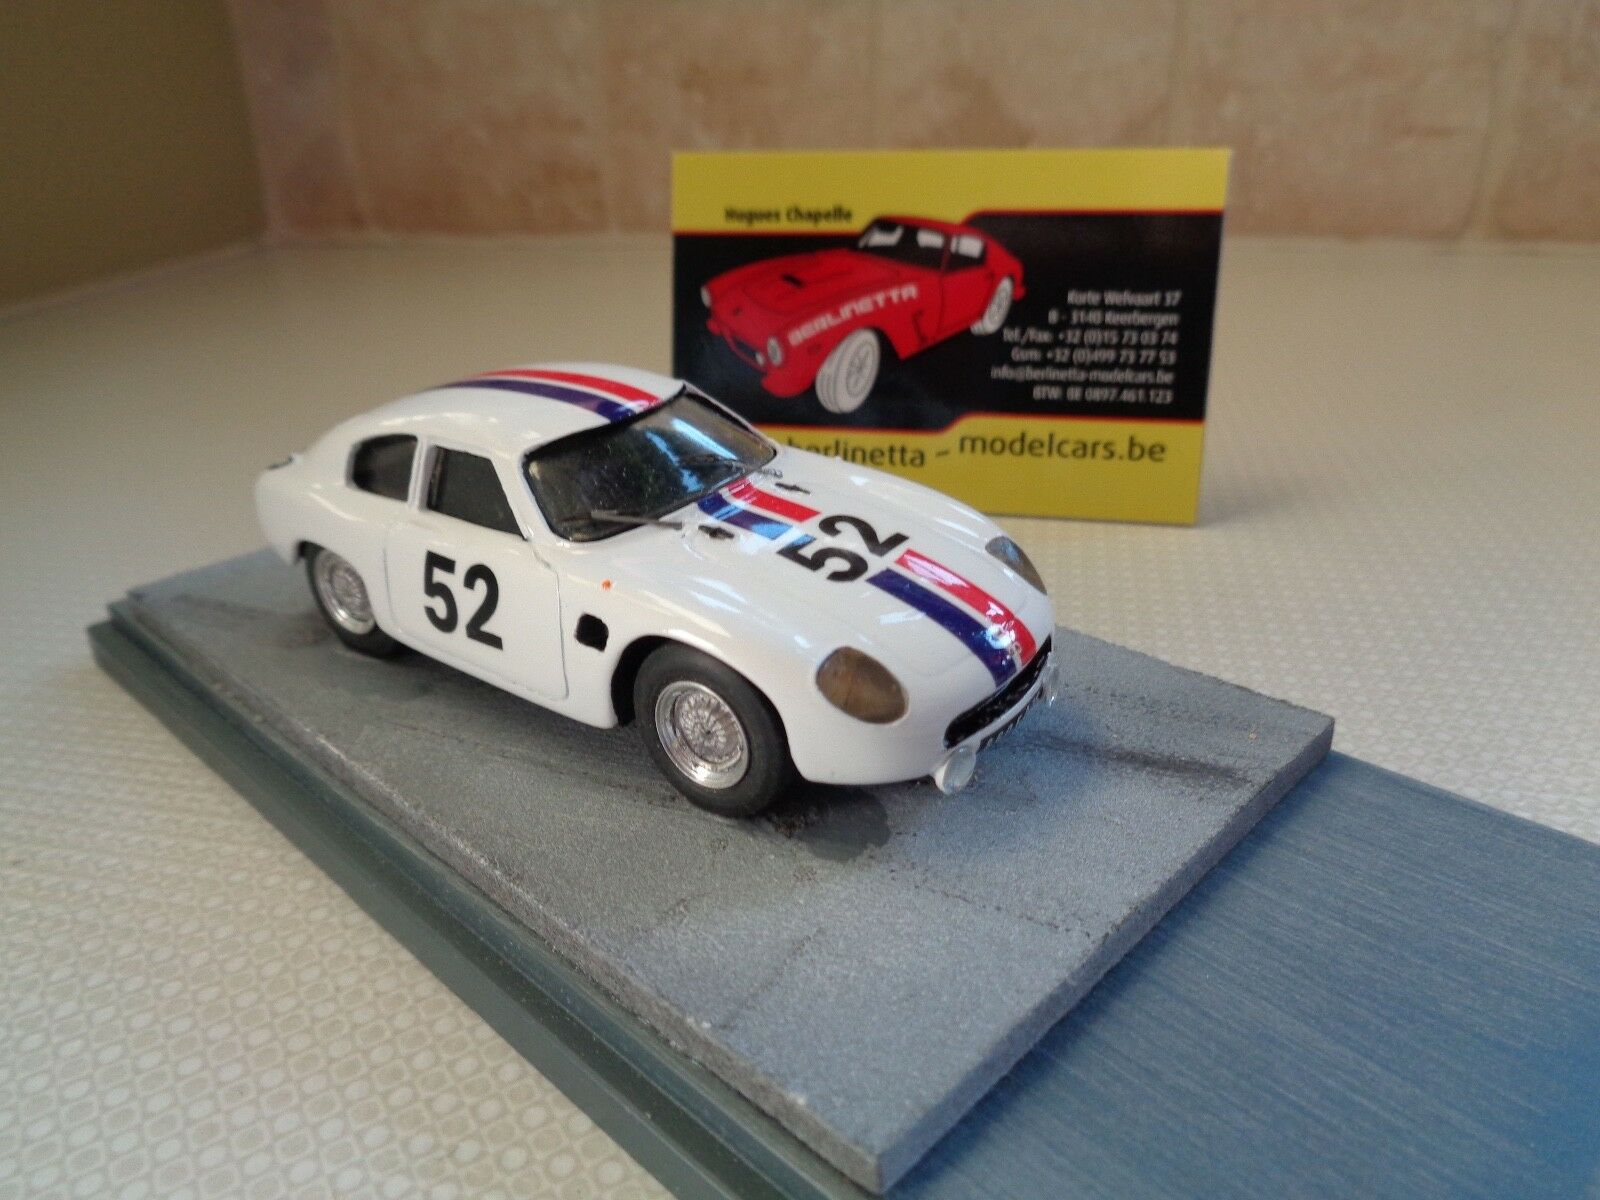 PROVENCE MOULAGE DB PANHARD HBR5 24H LE MANS 1961 HANDBUILT 1 43 + DISPLAY-BOX